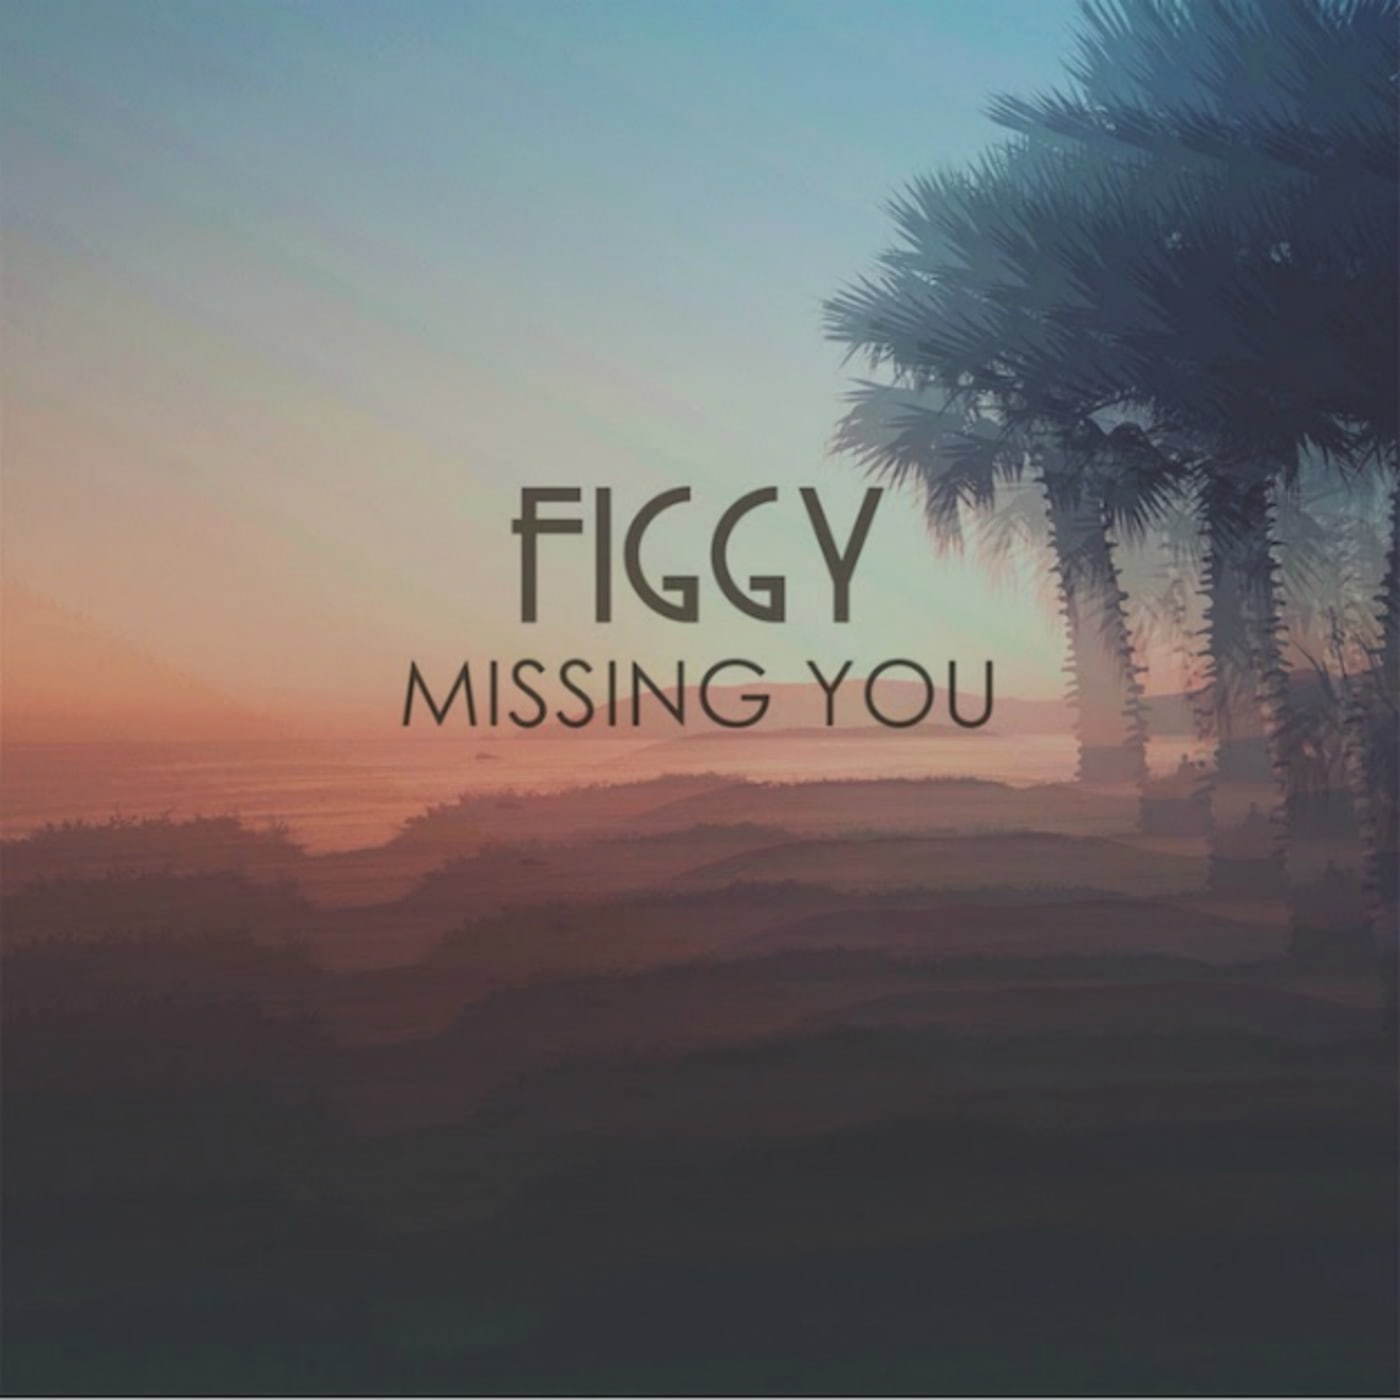 figgy missing you